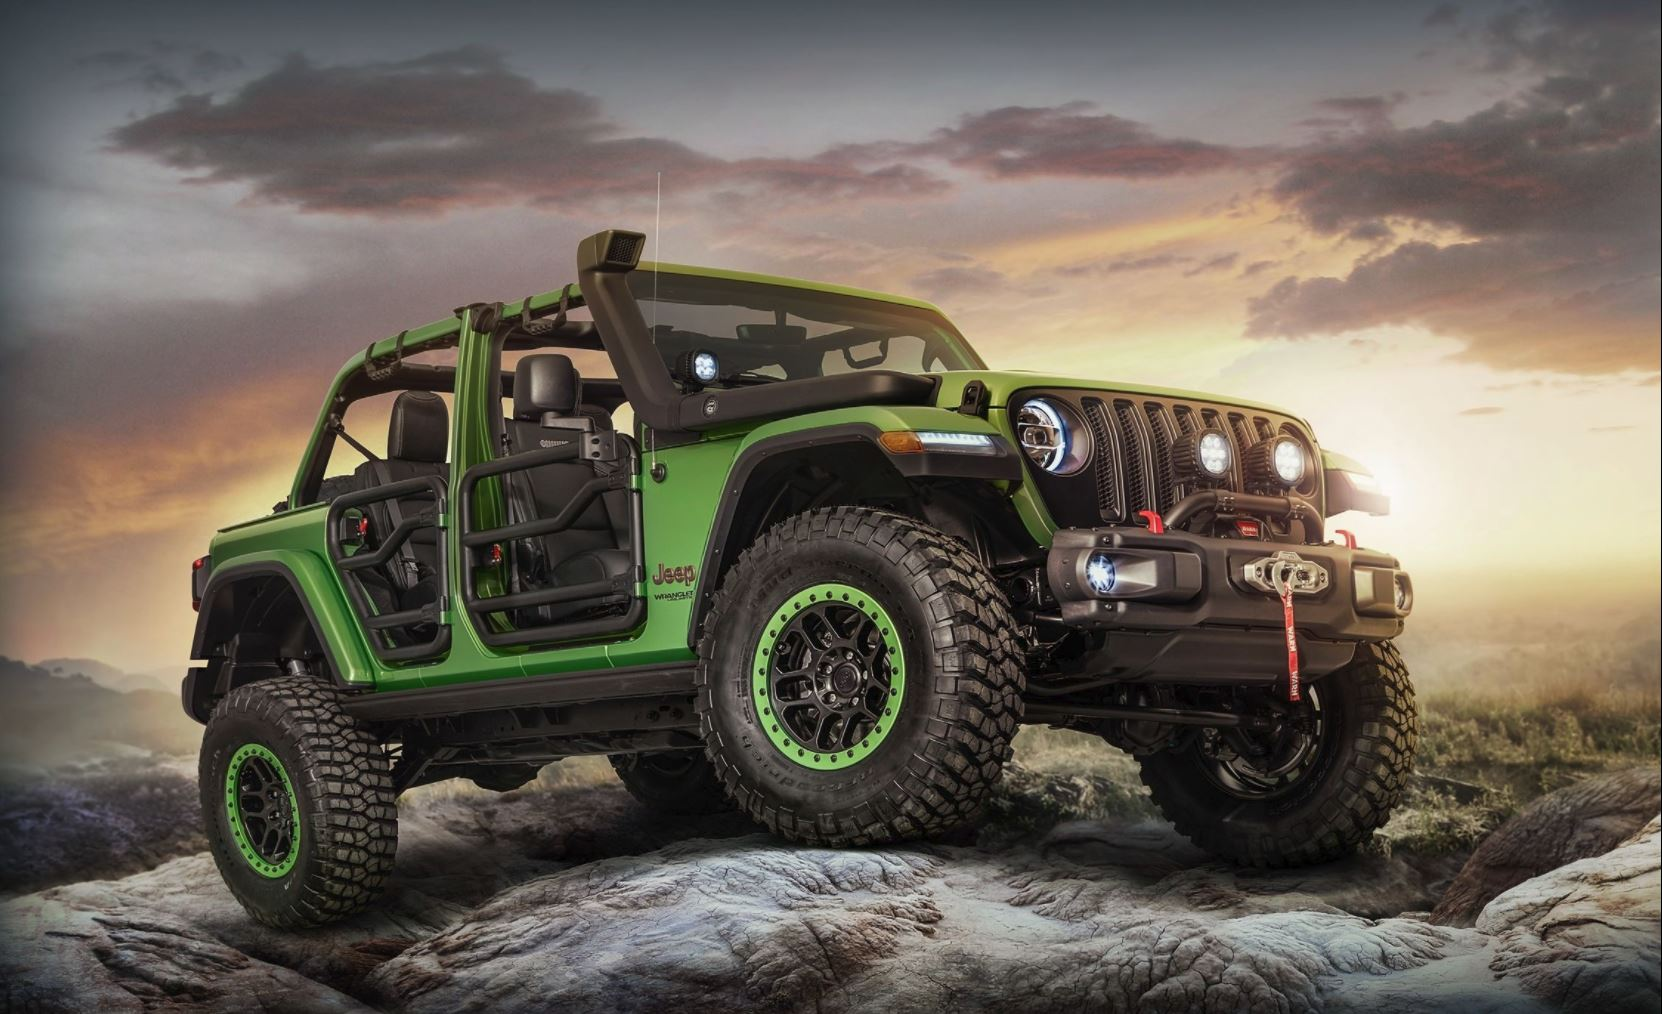 Mopar builds JL Wrangler, and it's awesome!